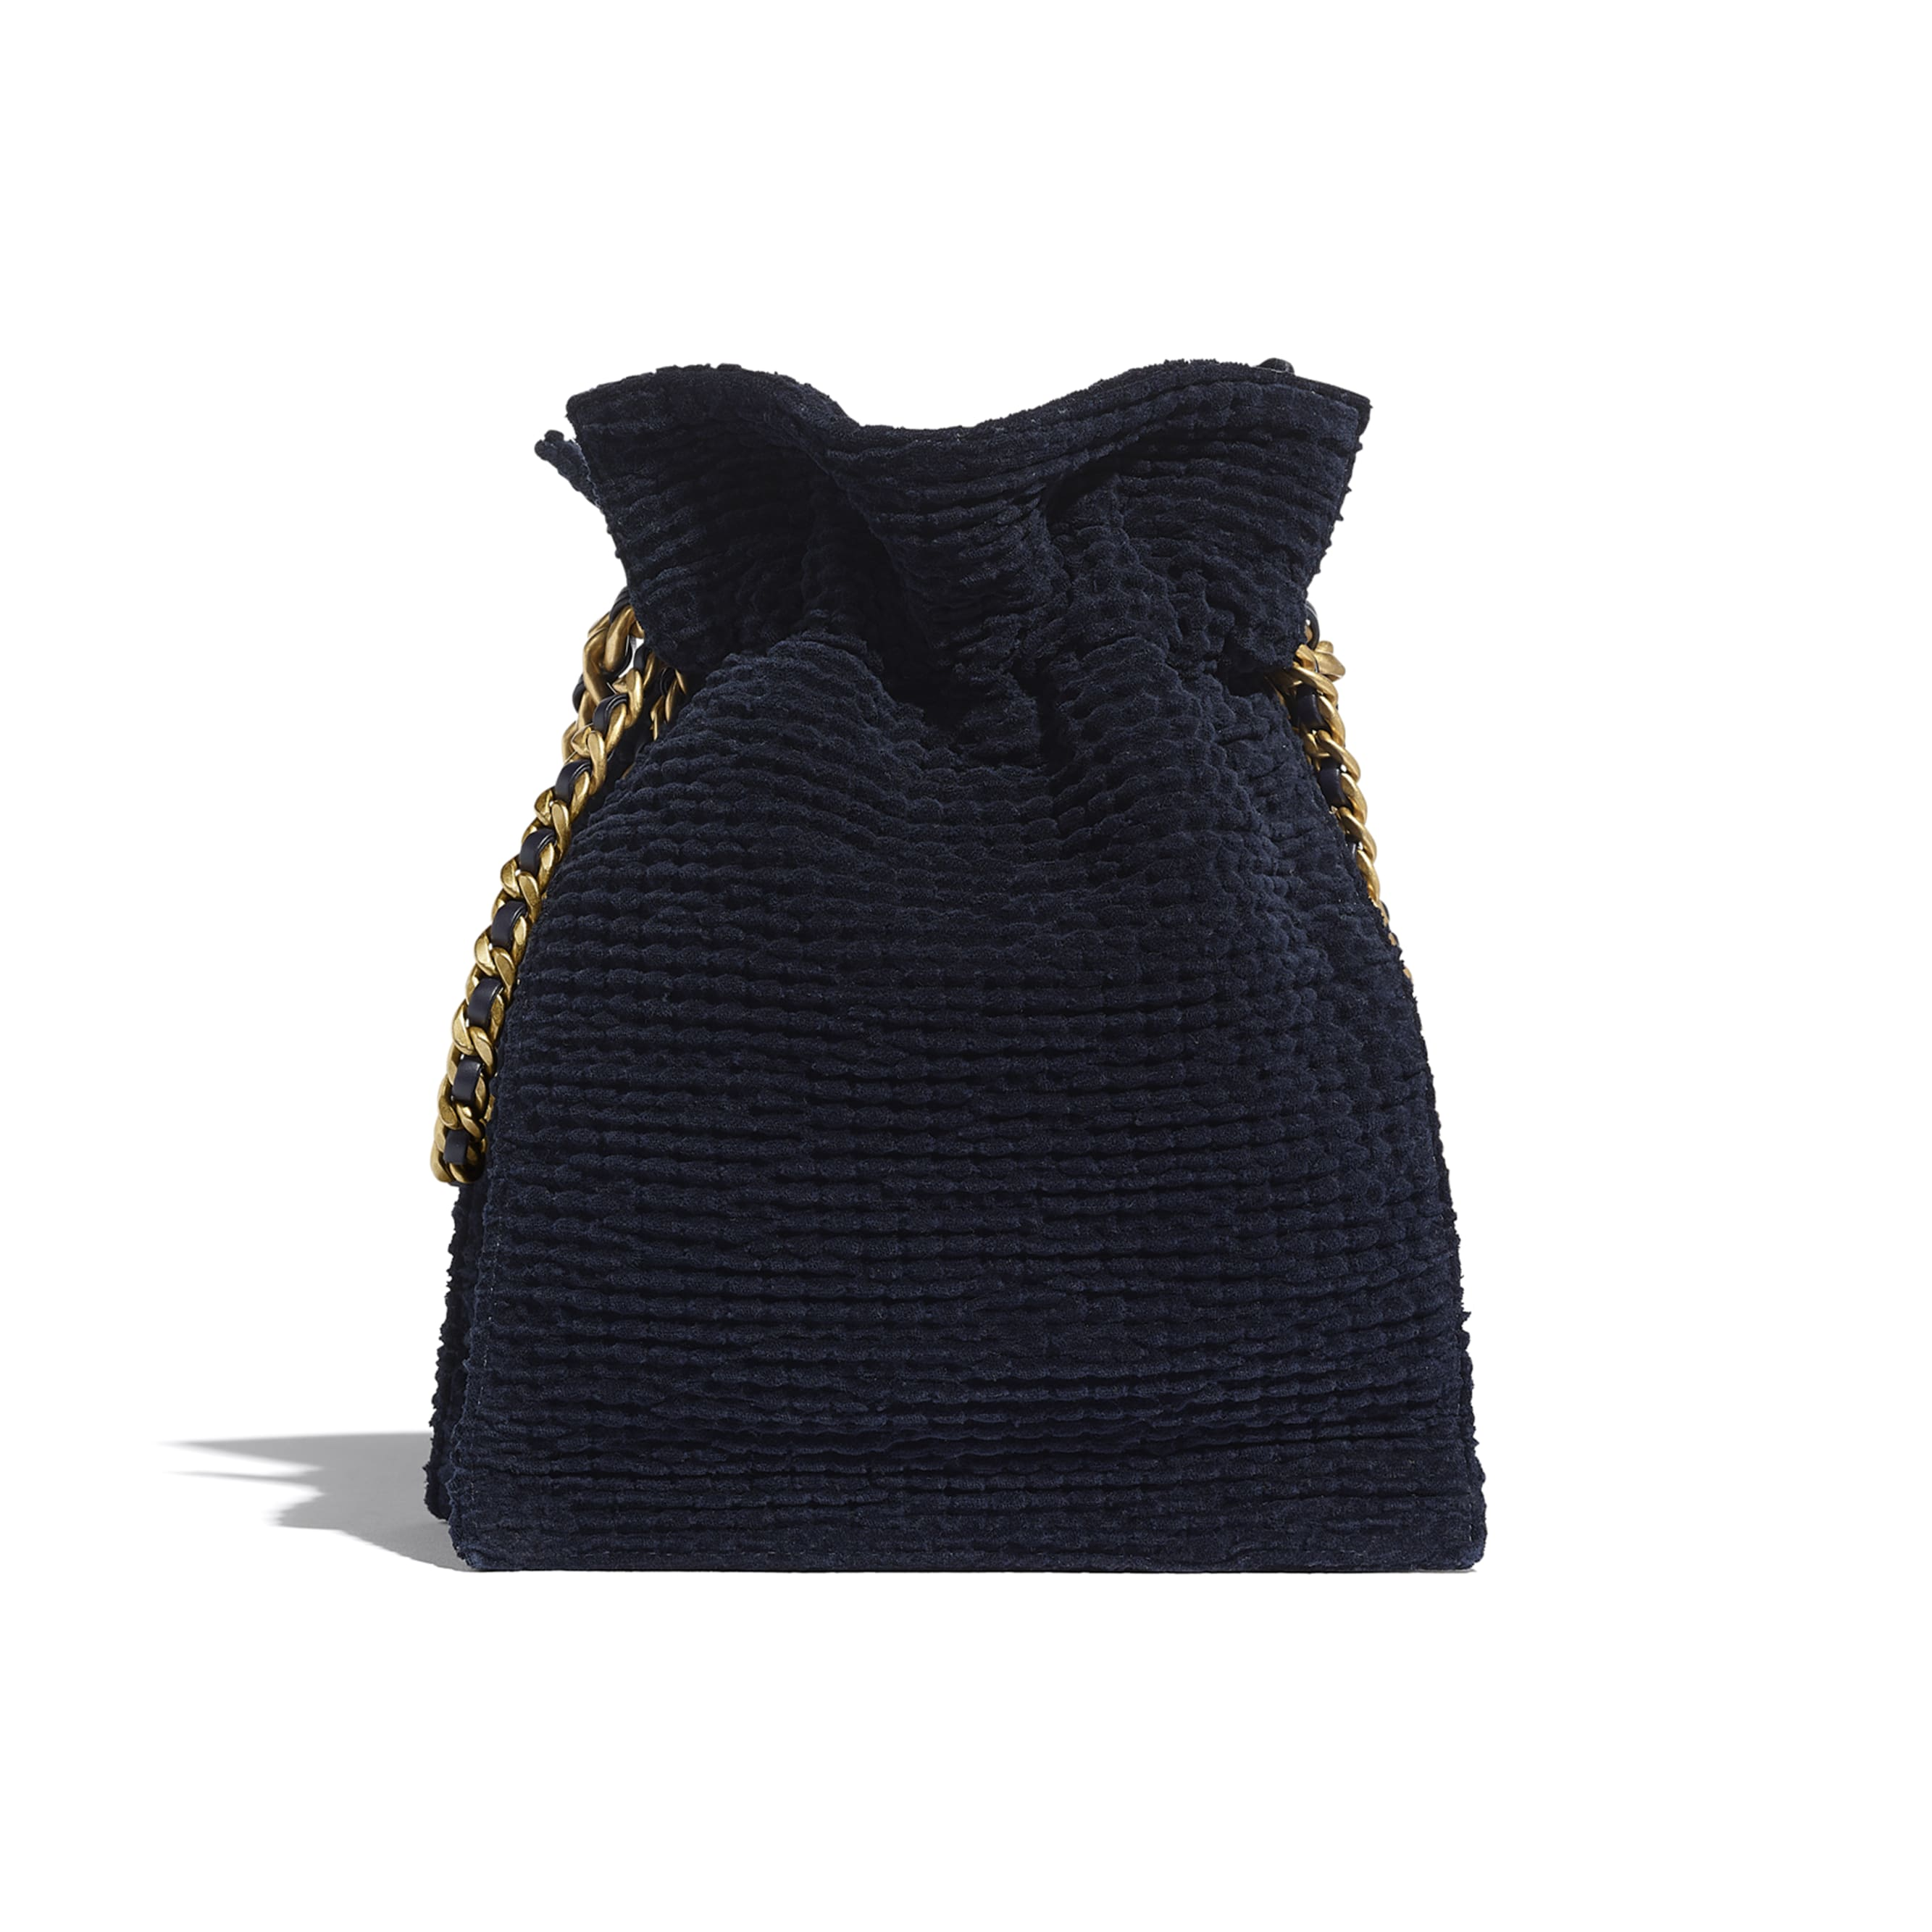 Shopping Bag - Navy Blue - Cotton Tweed & Gold-Tone Metal - CHANEL - Alternative view - see standard sized version